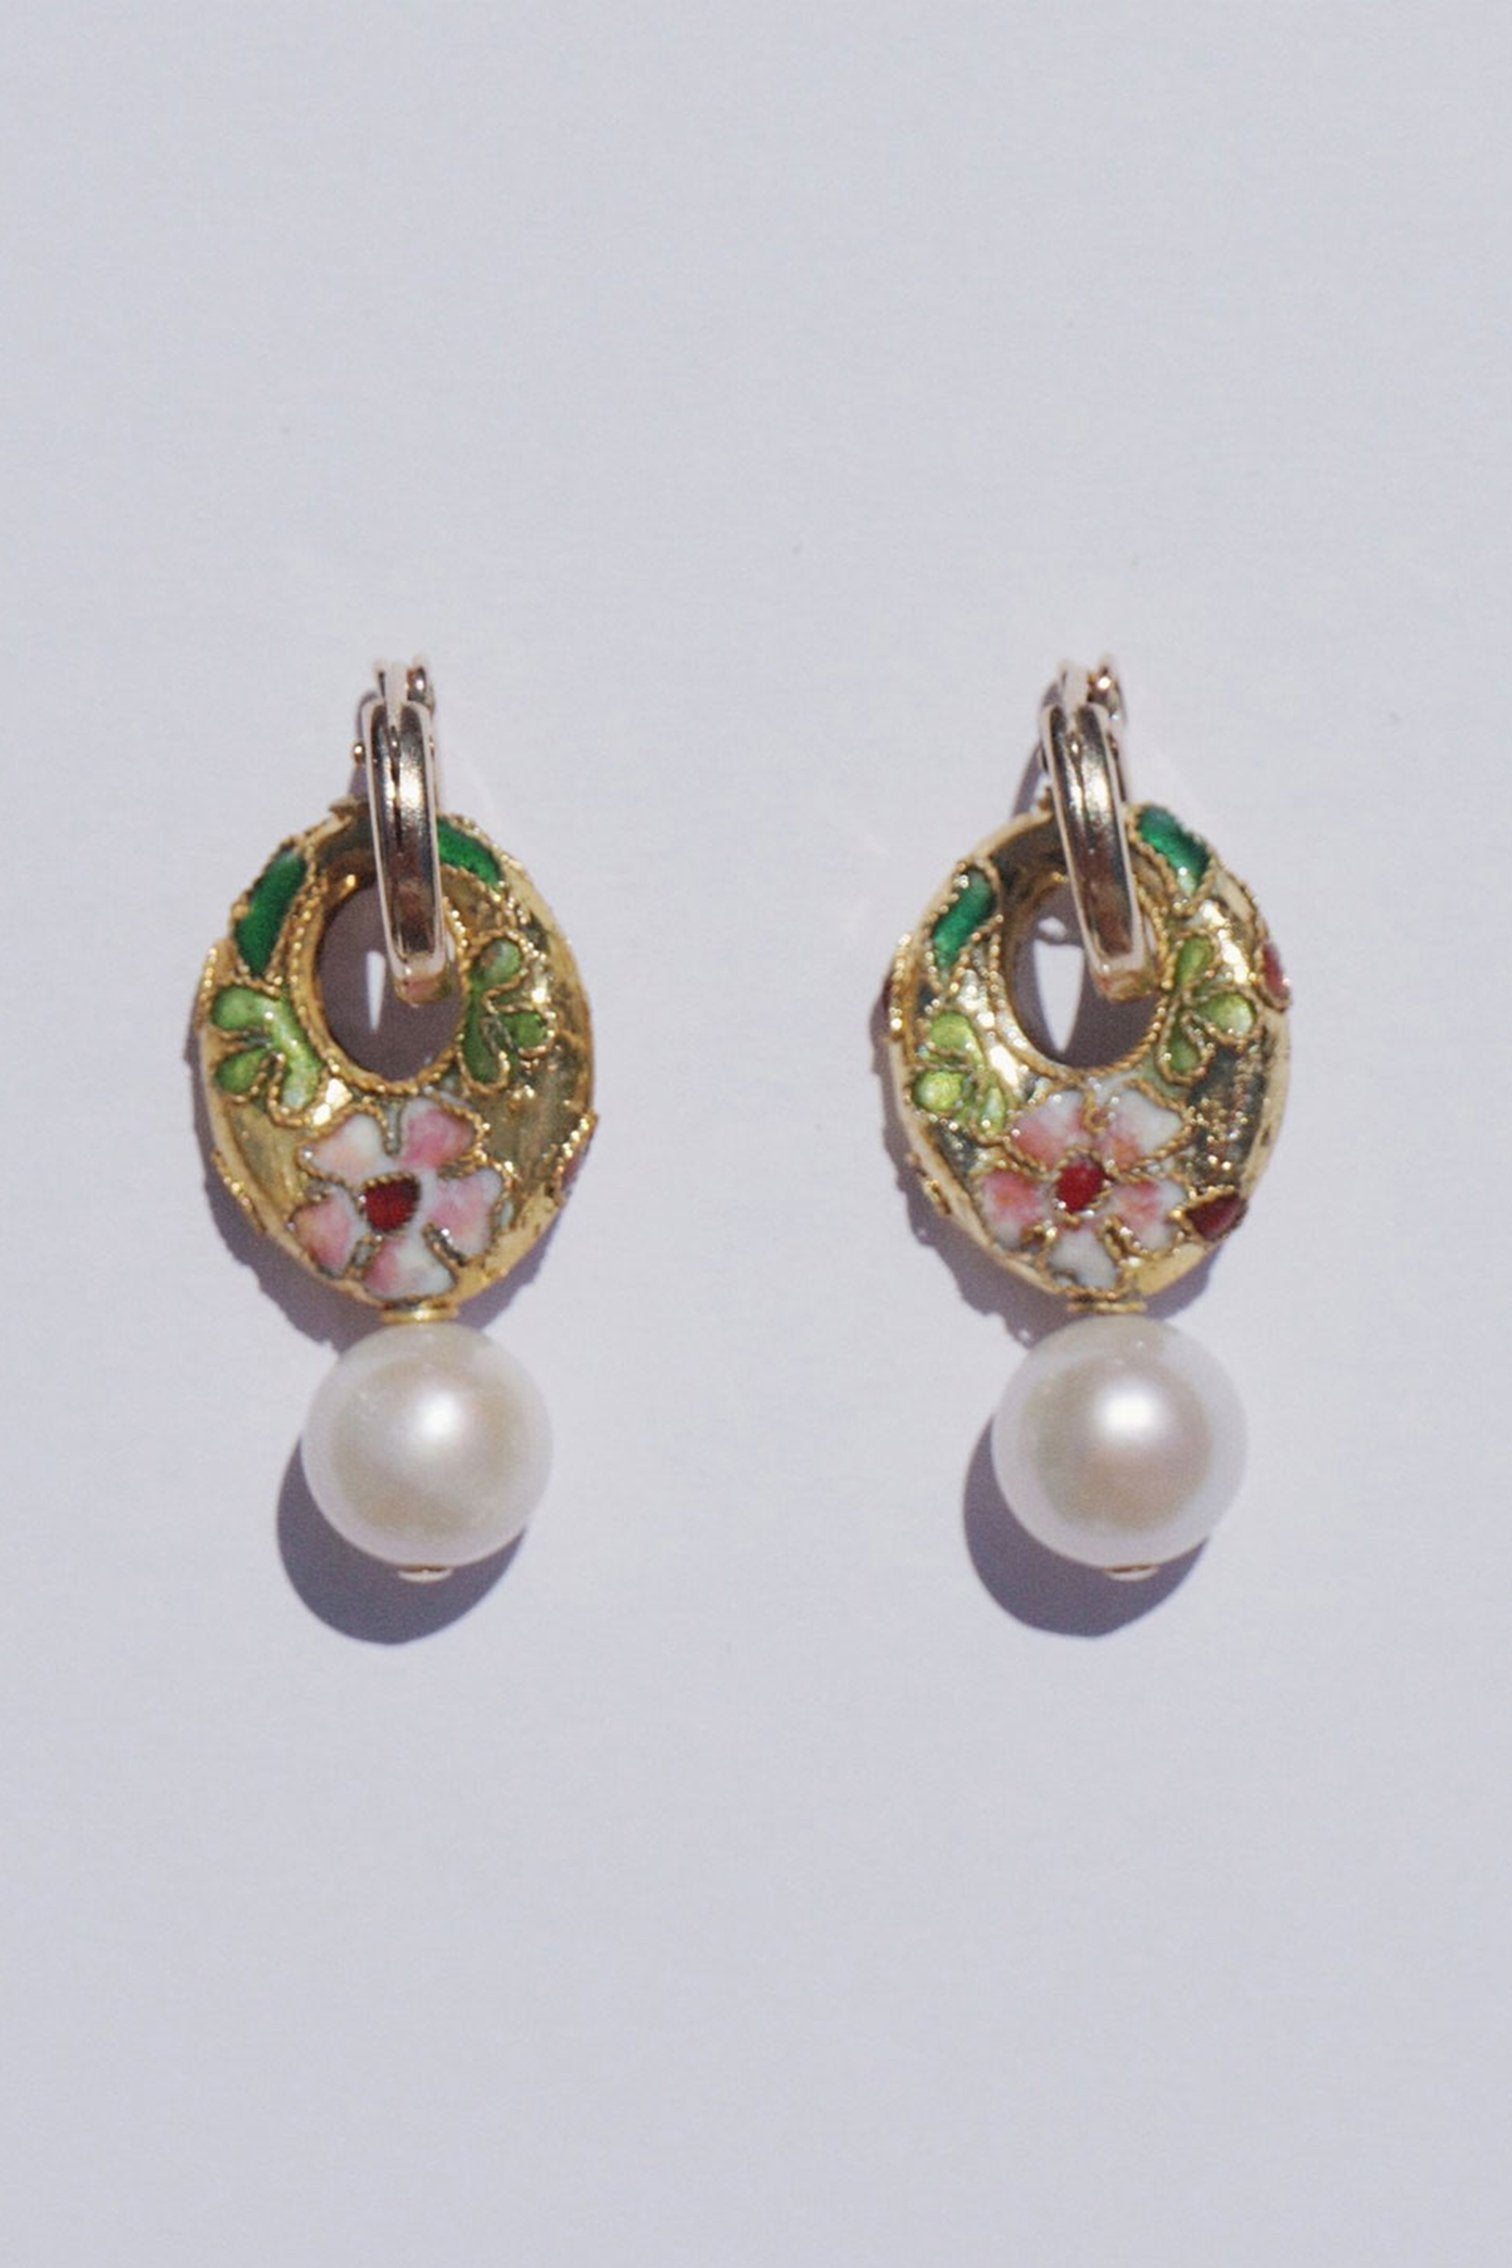 Cloisonne Pearl Handmade Earrings